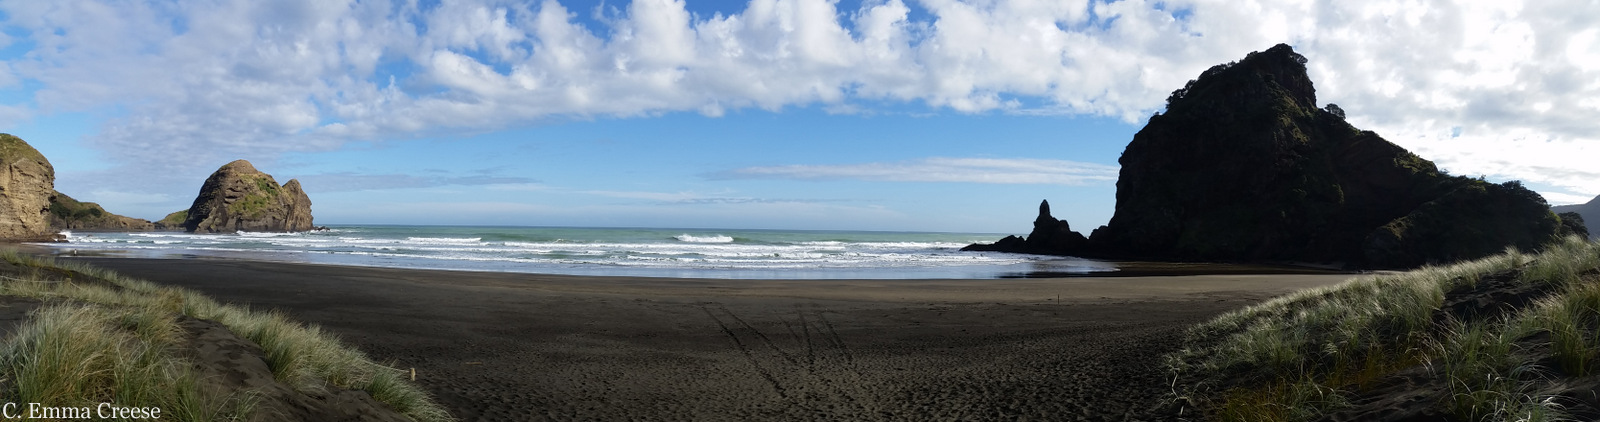 PIHA BEACH Auckland New Zealand